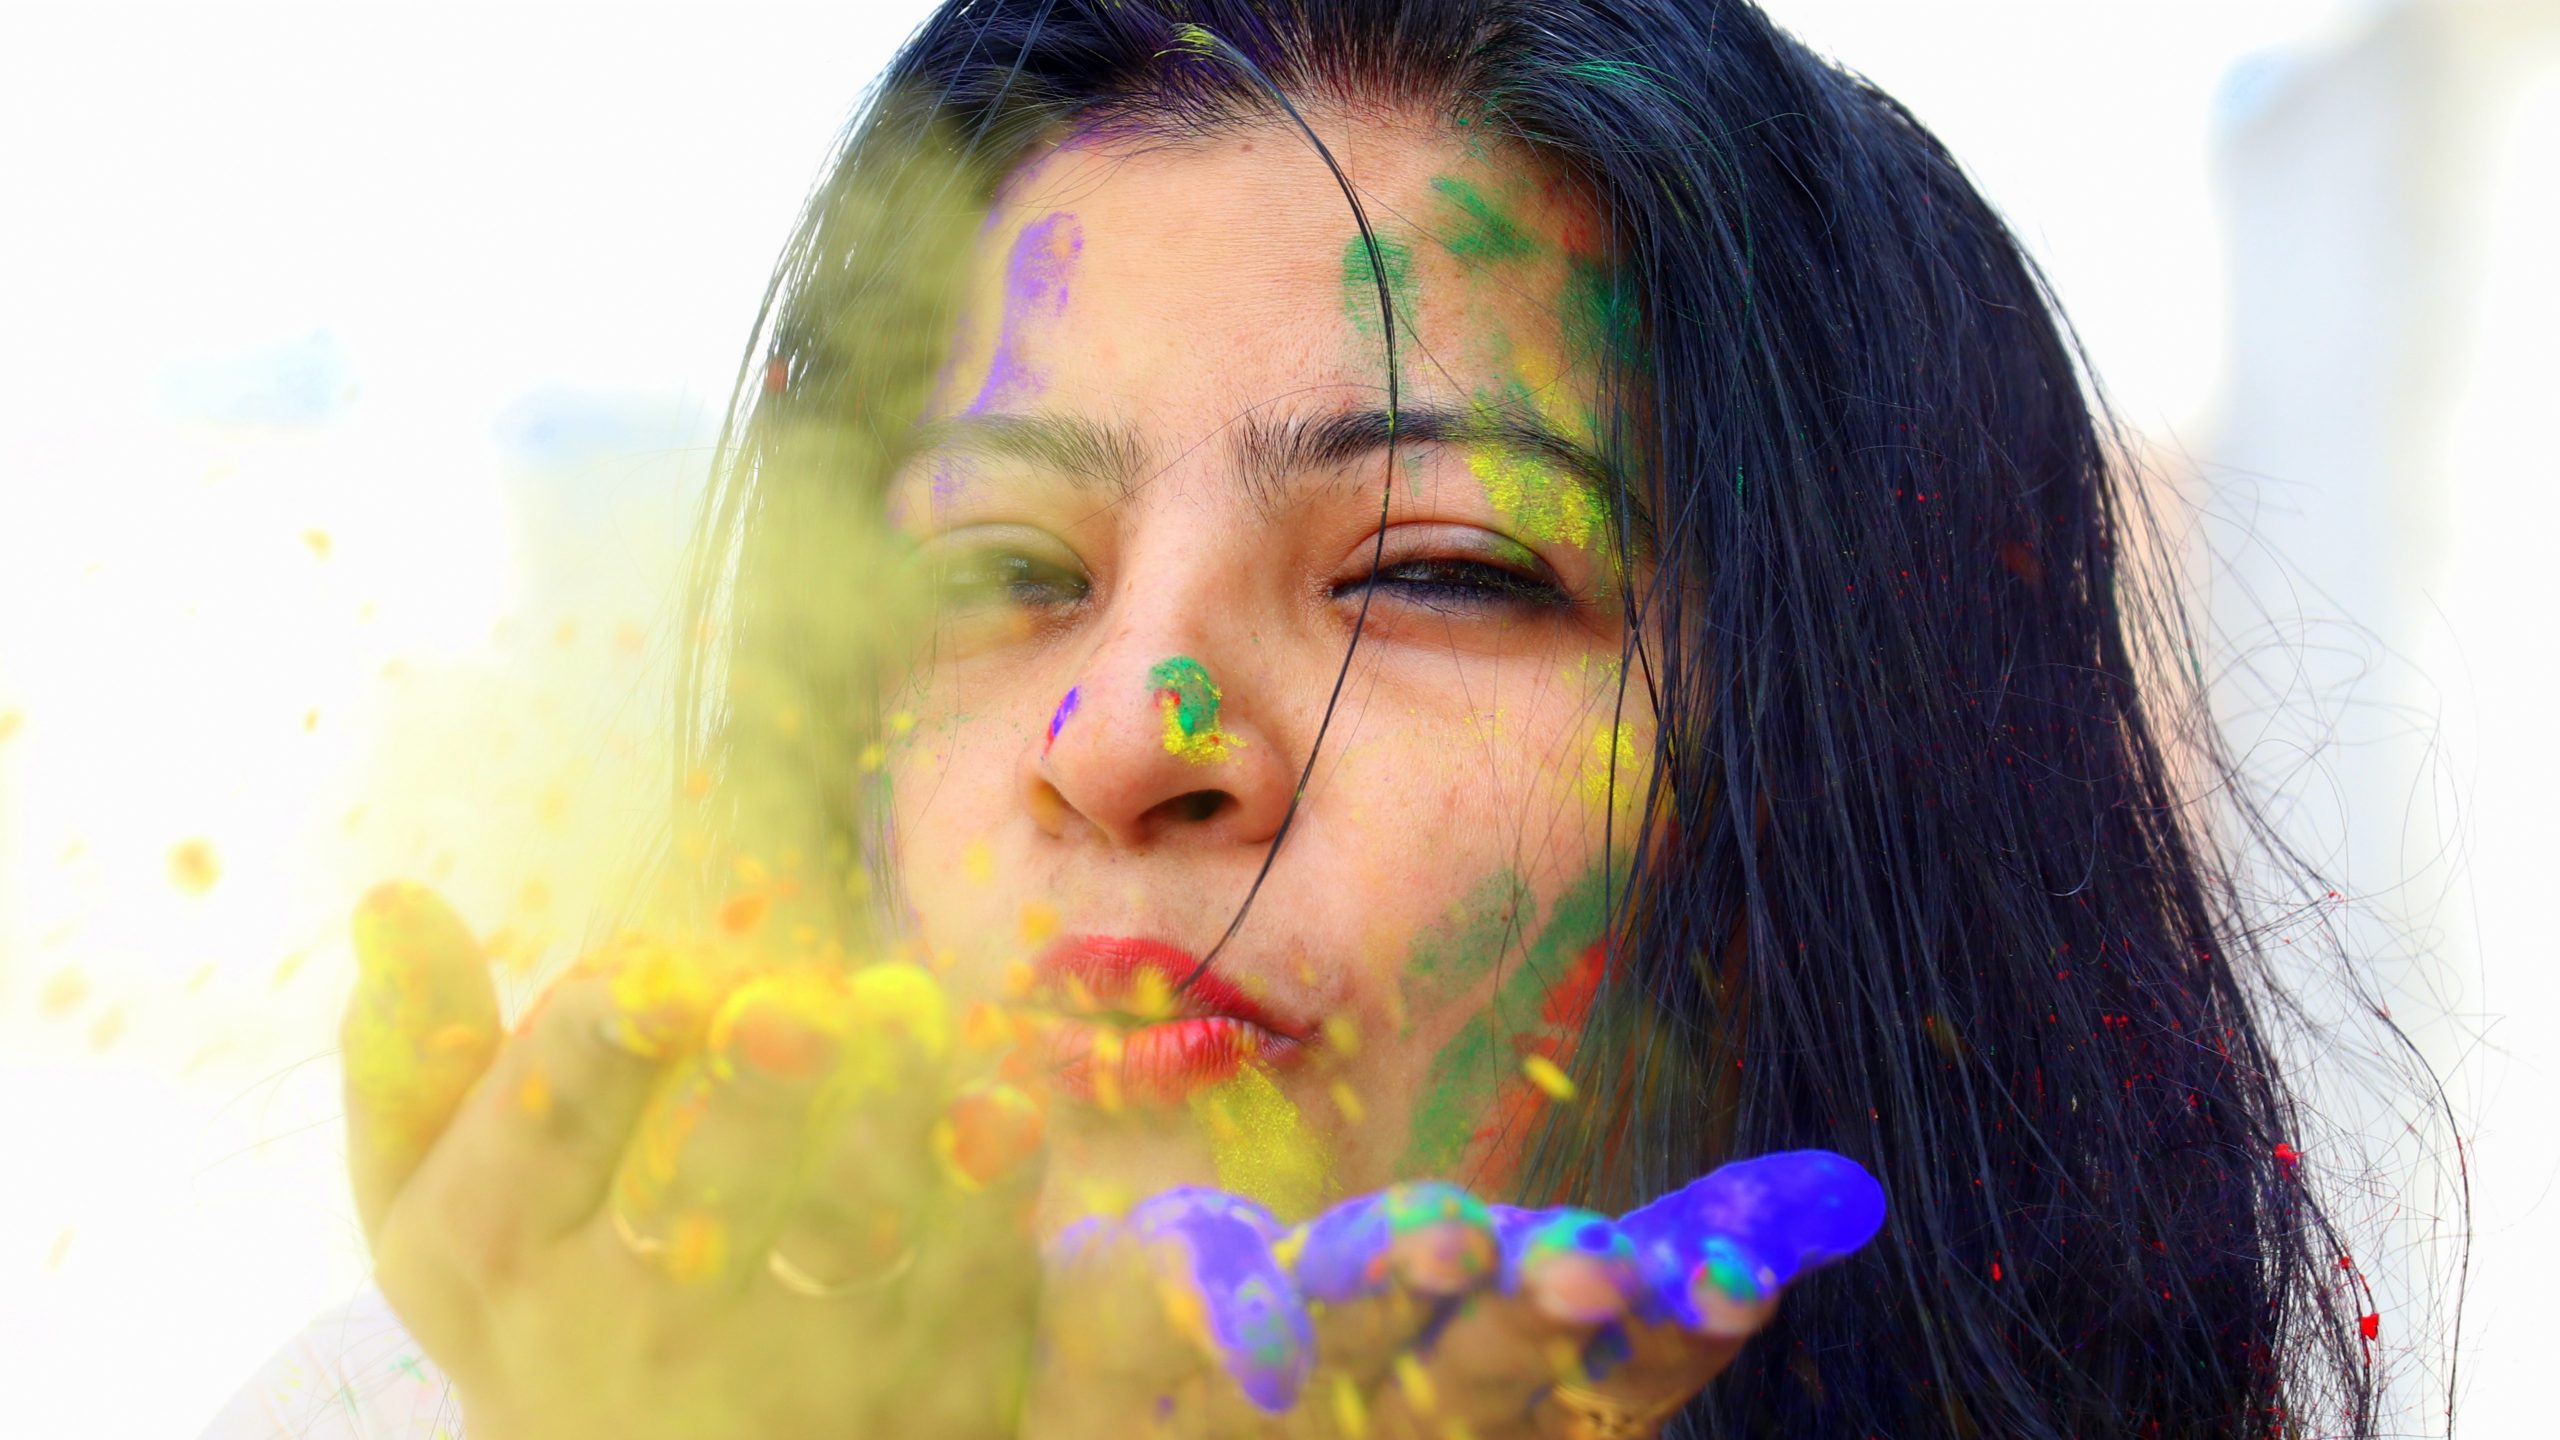 Girl blowing colors